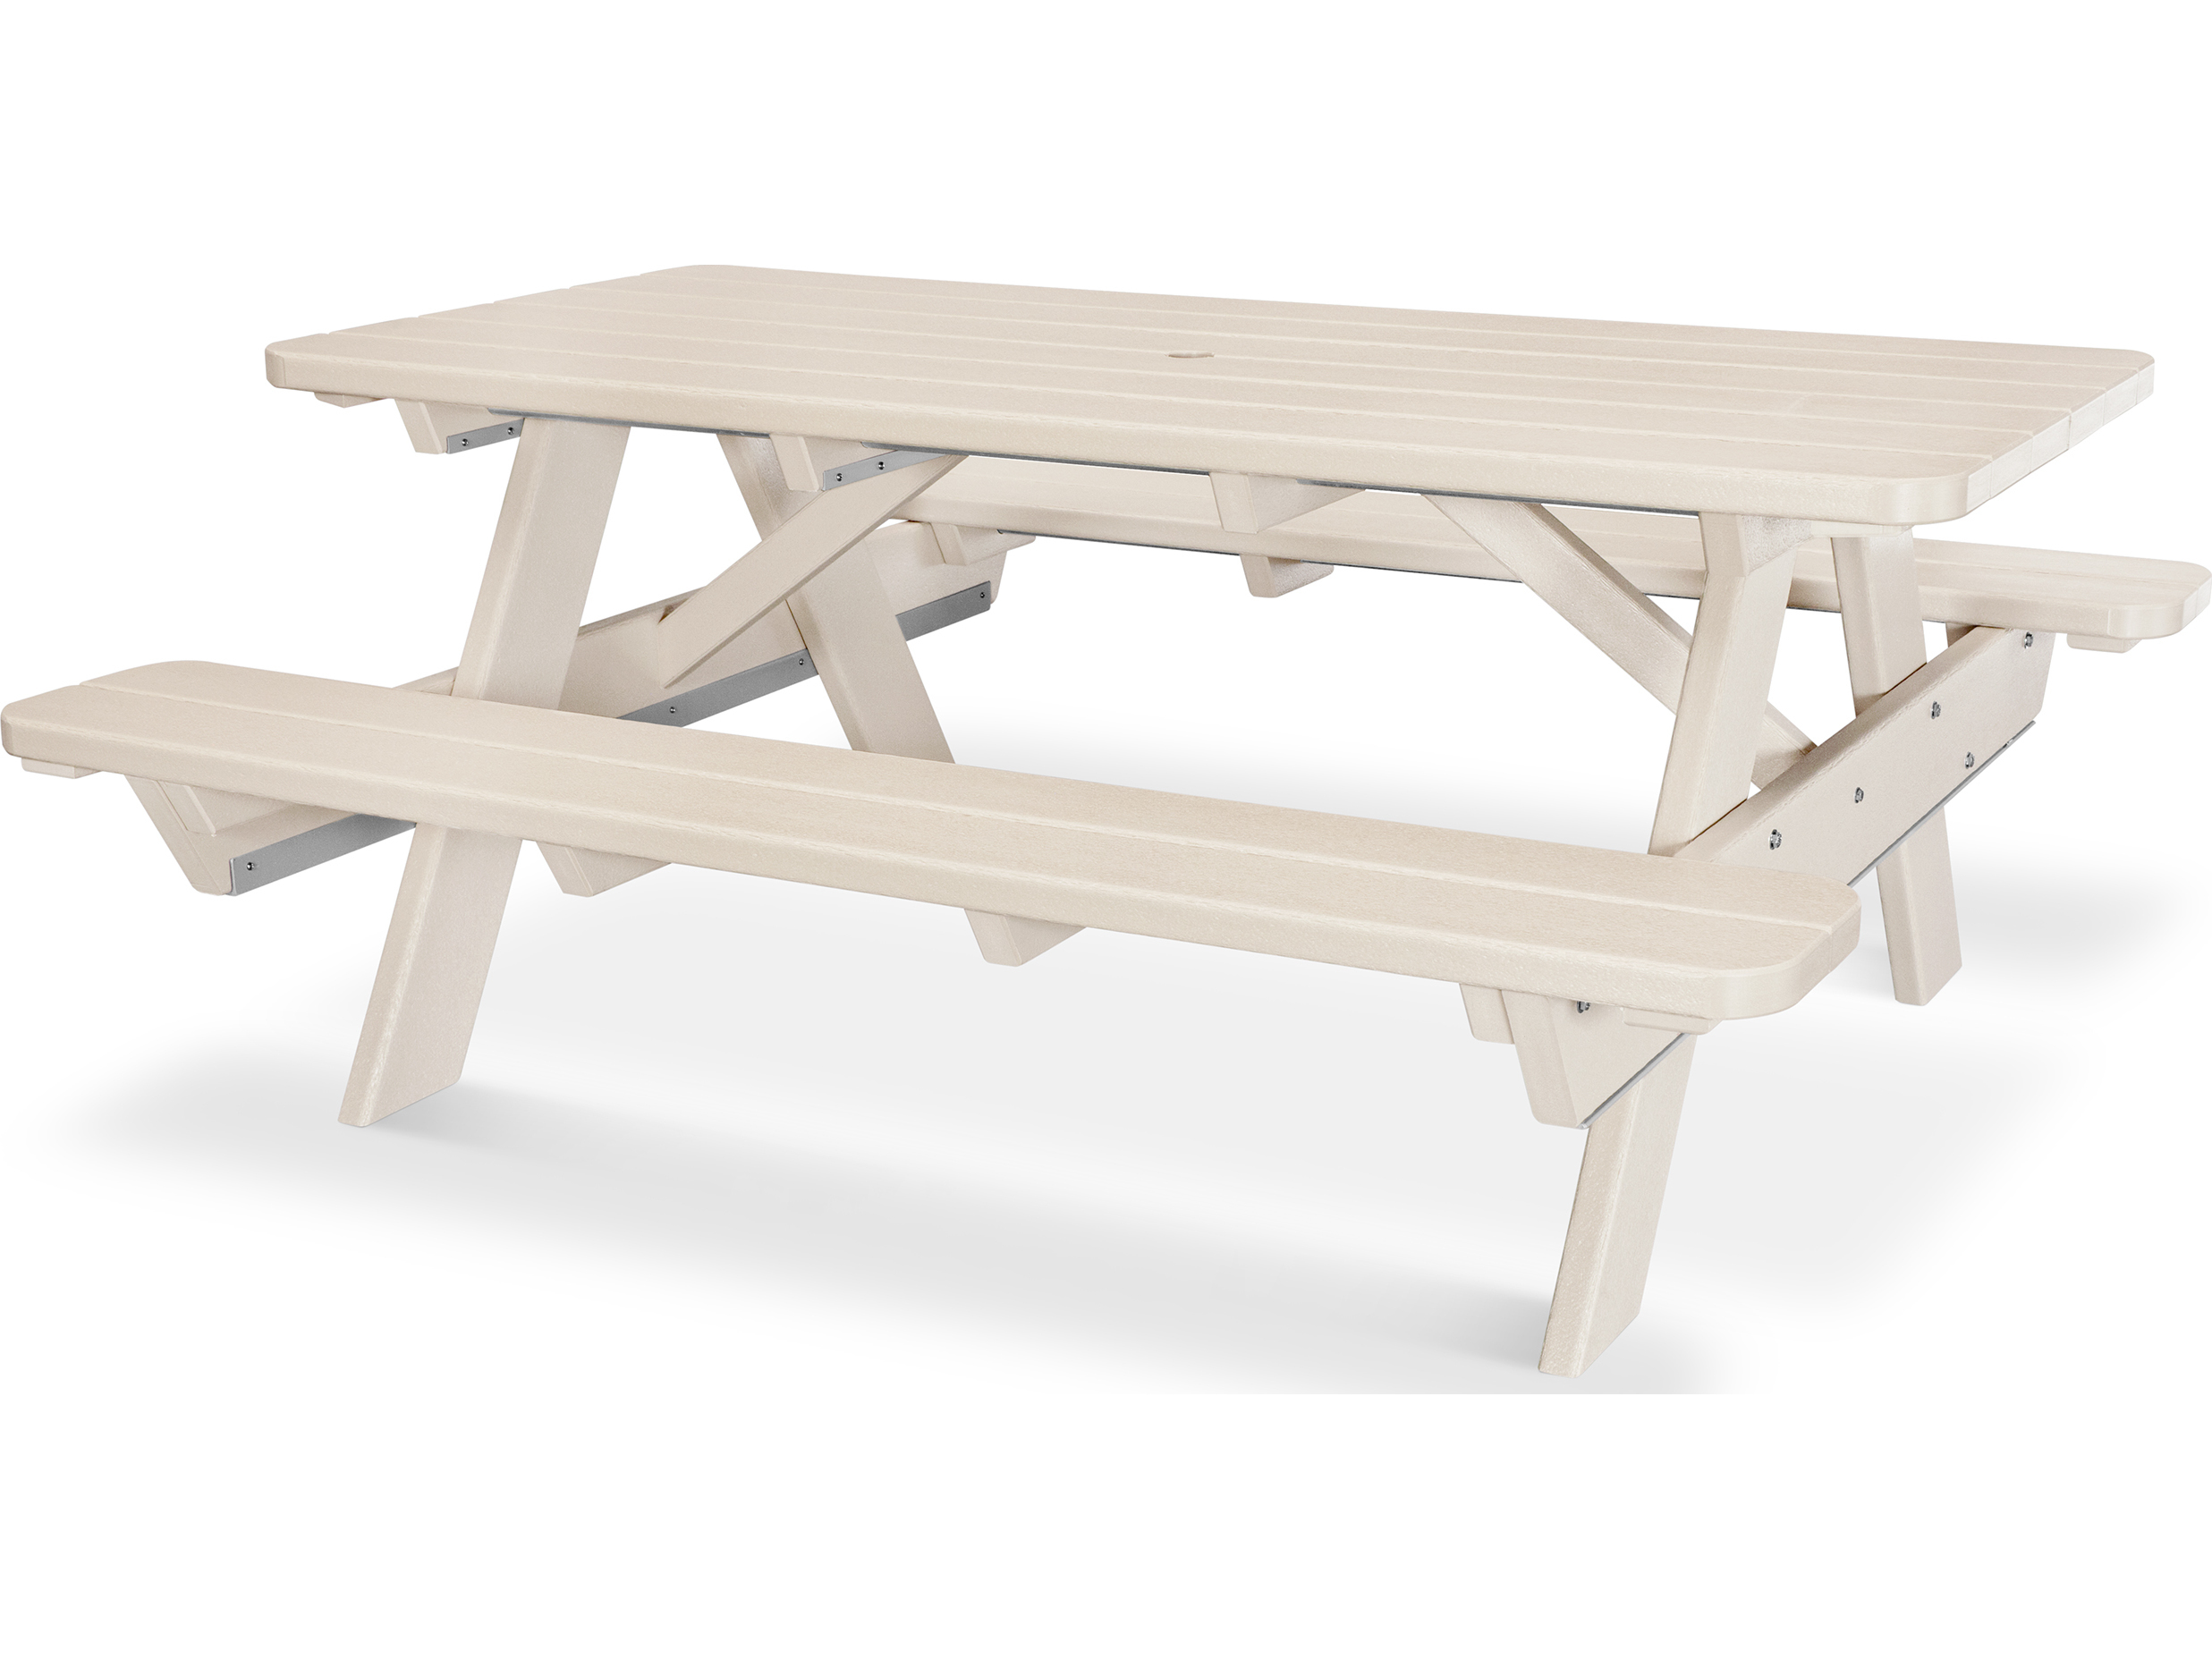 Polywood 174 Park Recycled Plastic 6 Picnic Table Pt172